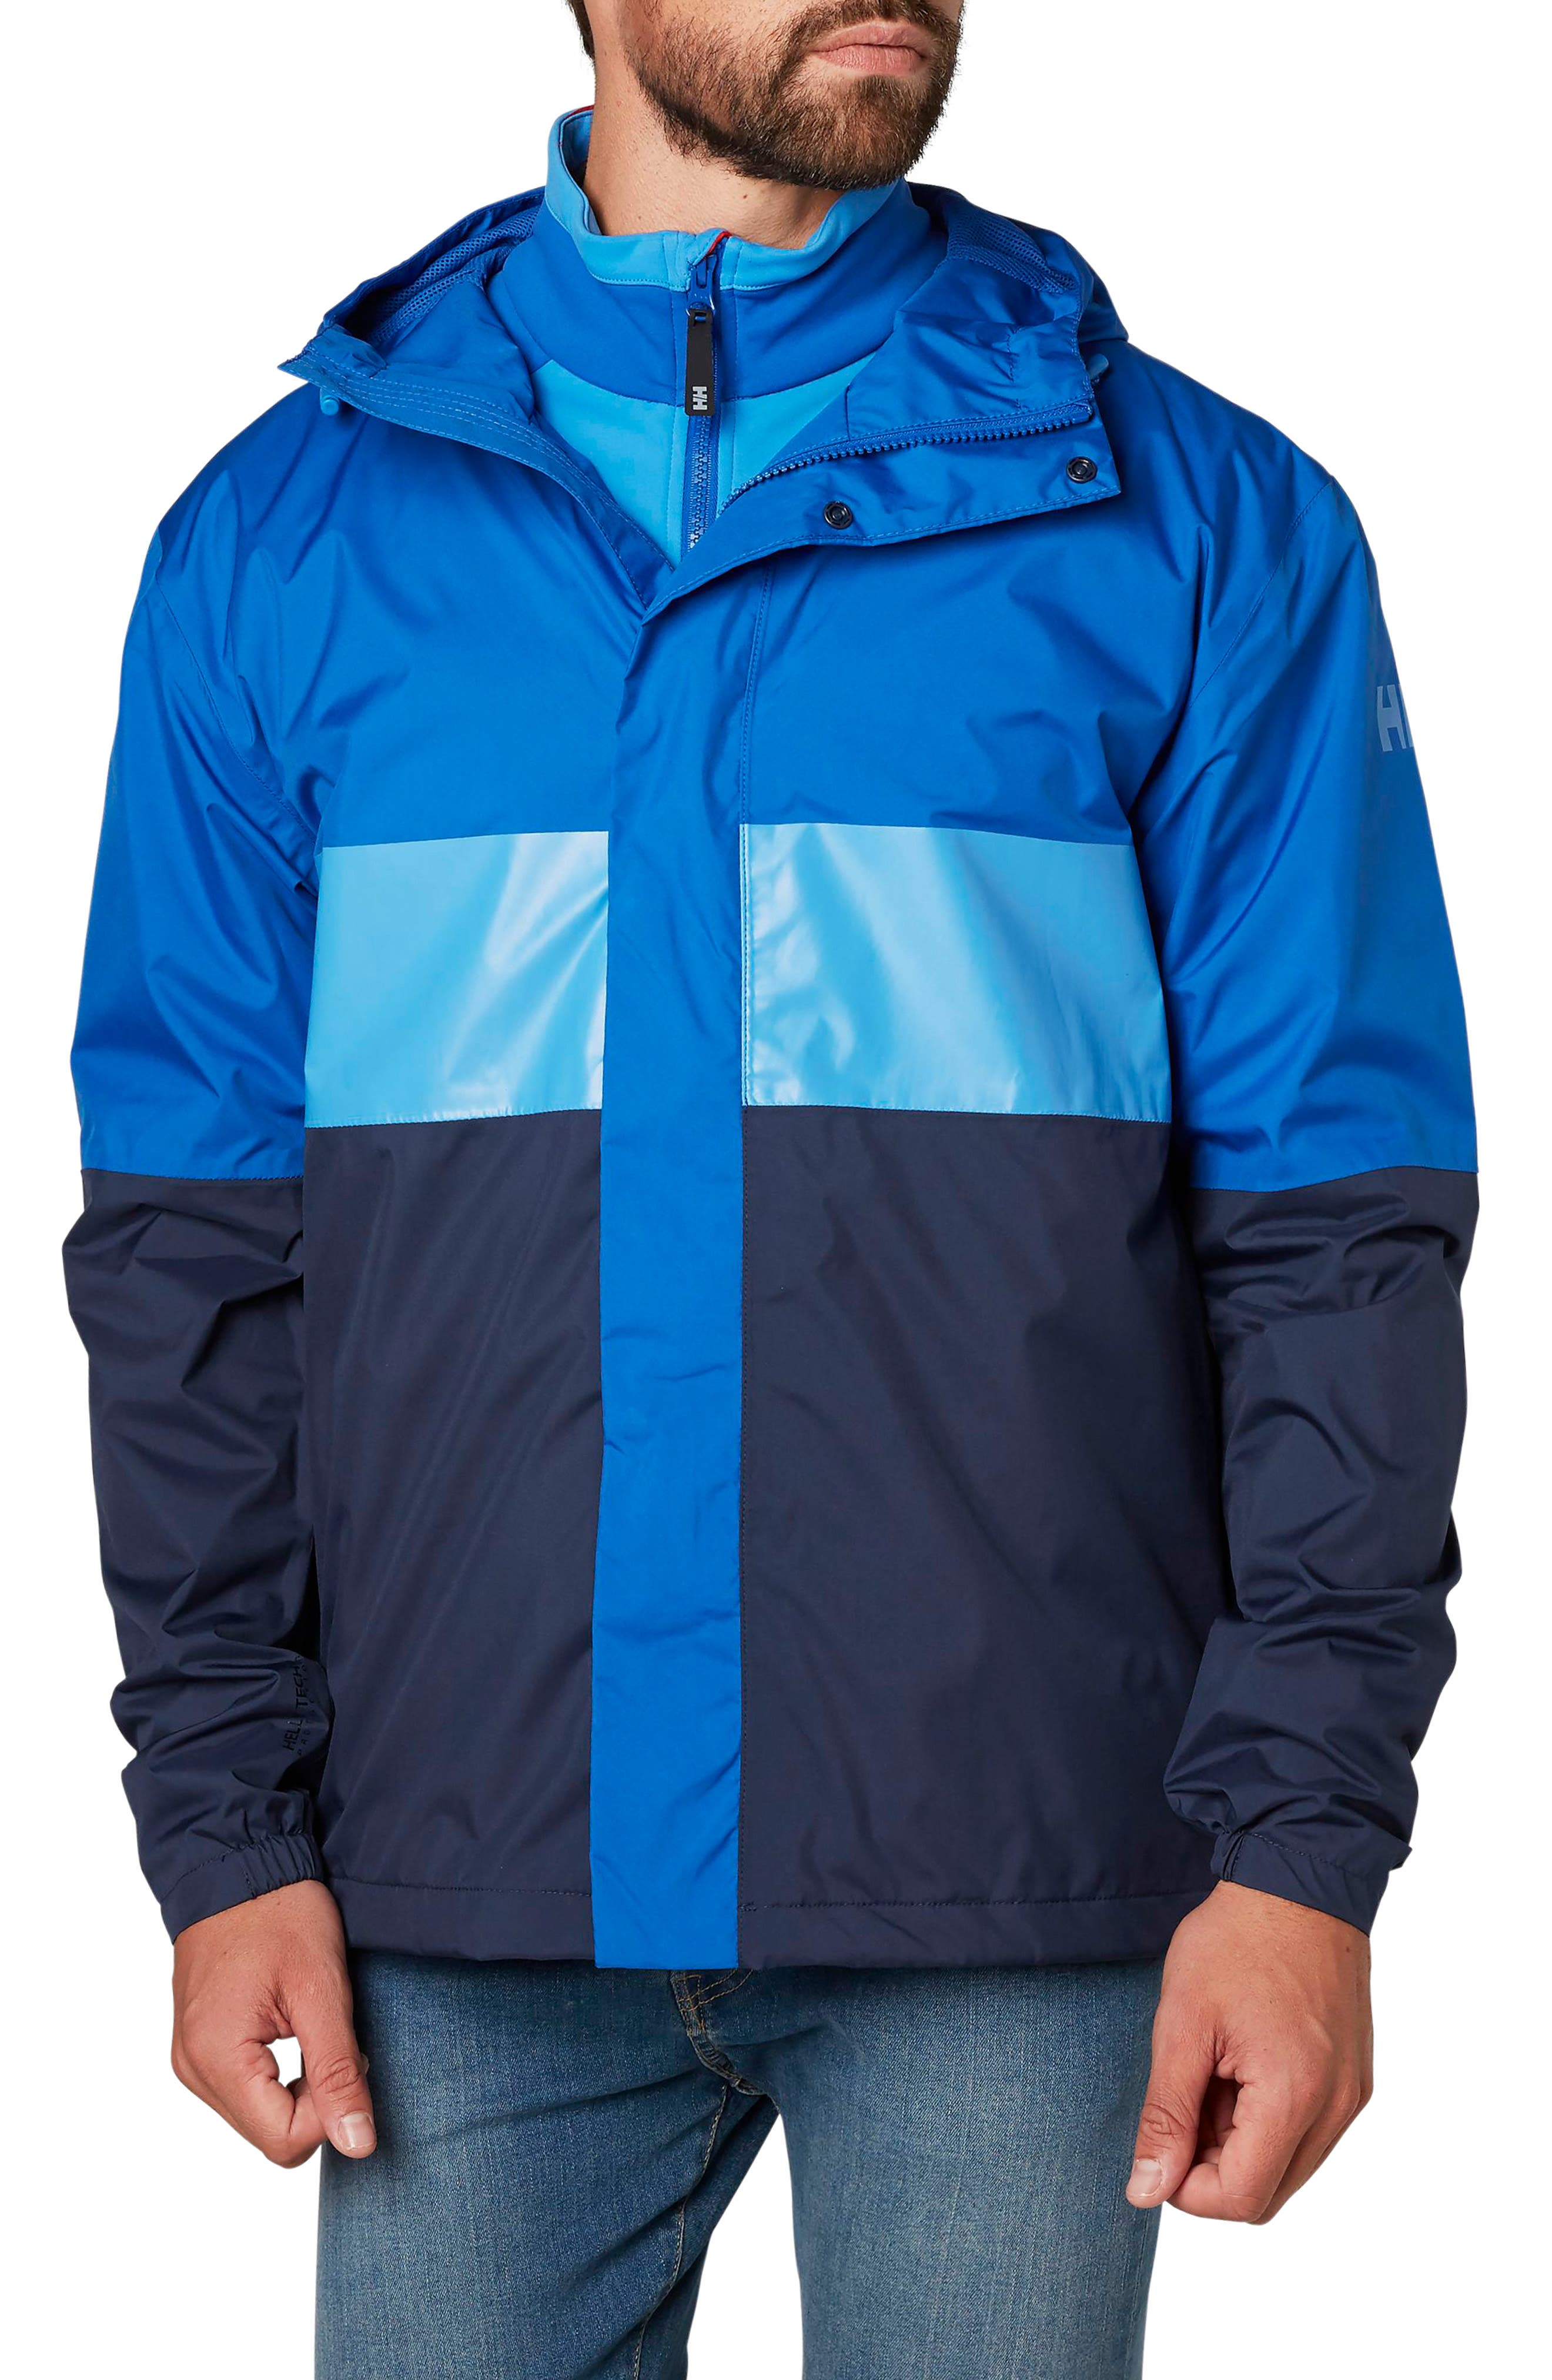 Alternate Image 1 Selected - Helly Hansen Active Jacket